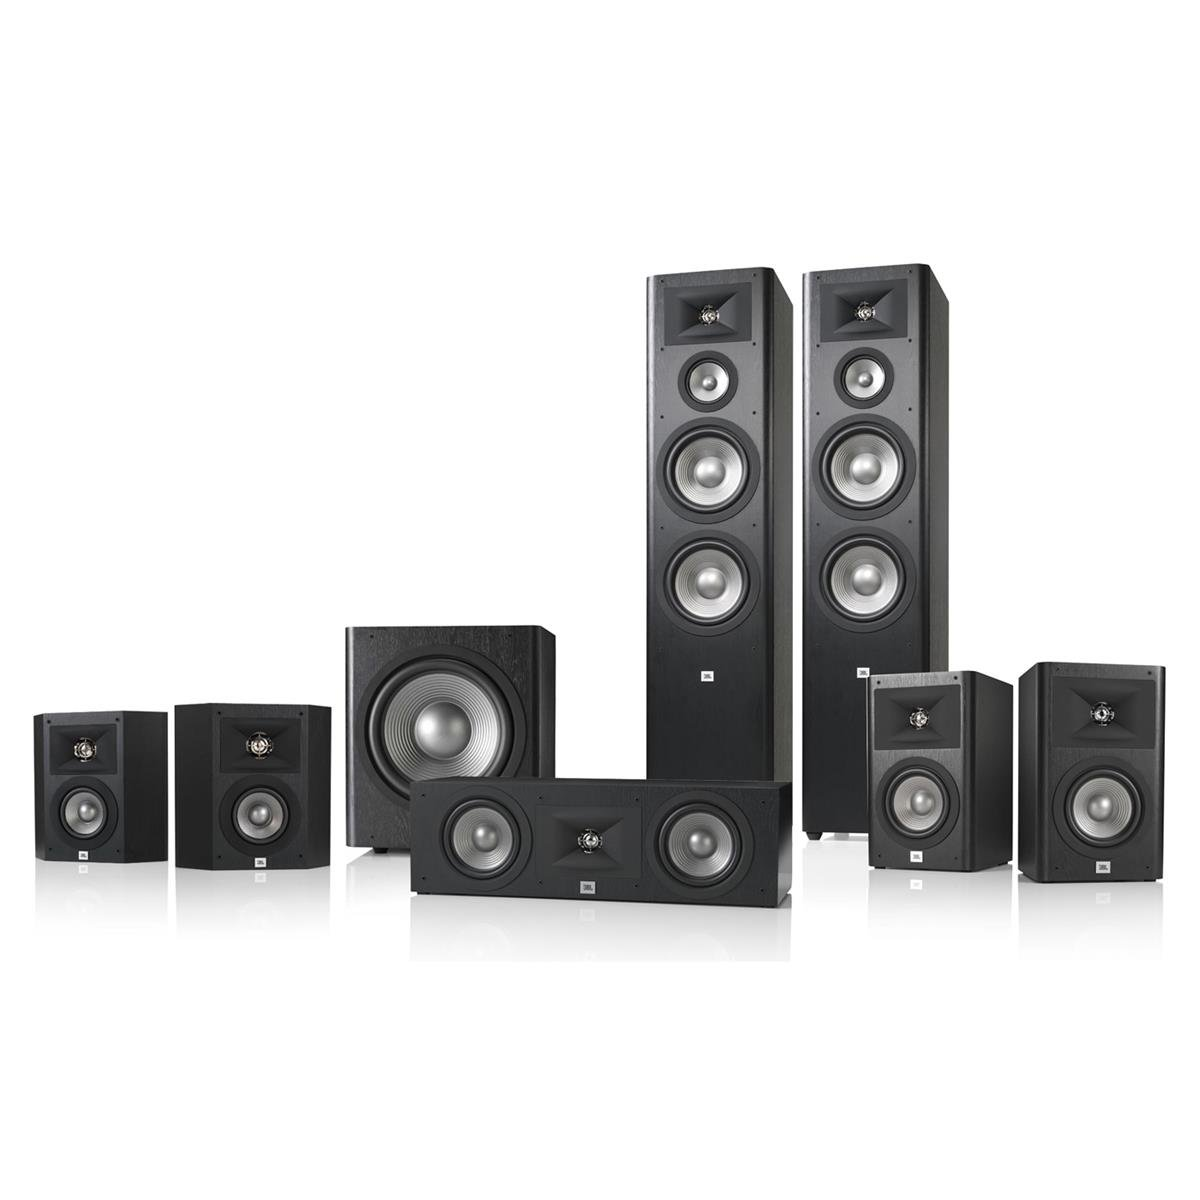 The Best 7.1 Home Theater System 3